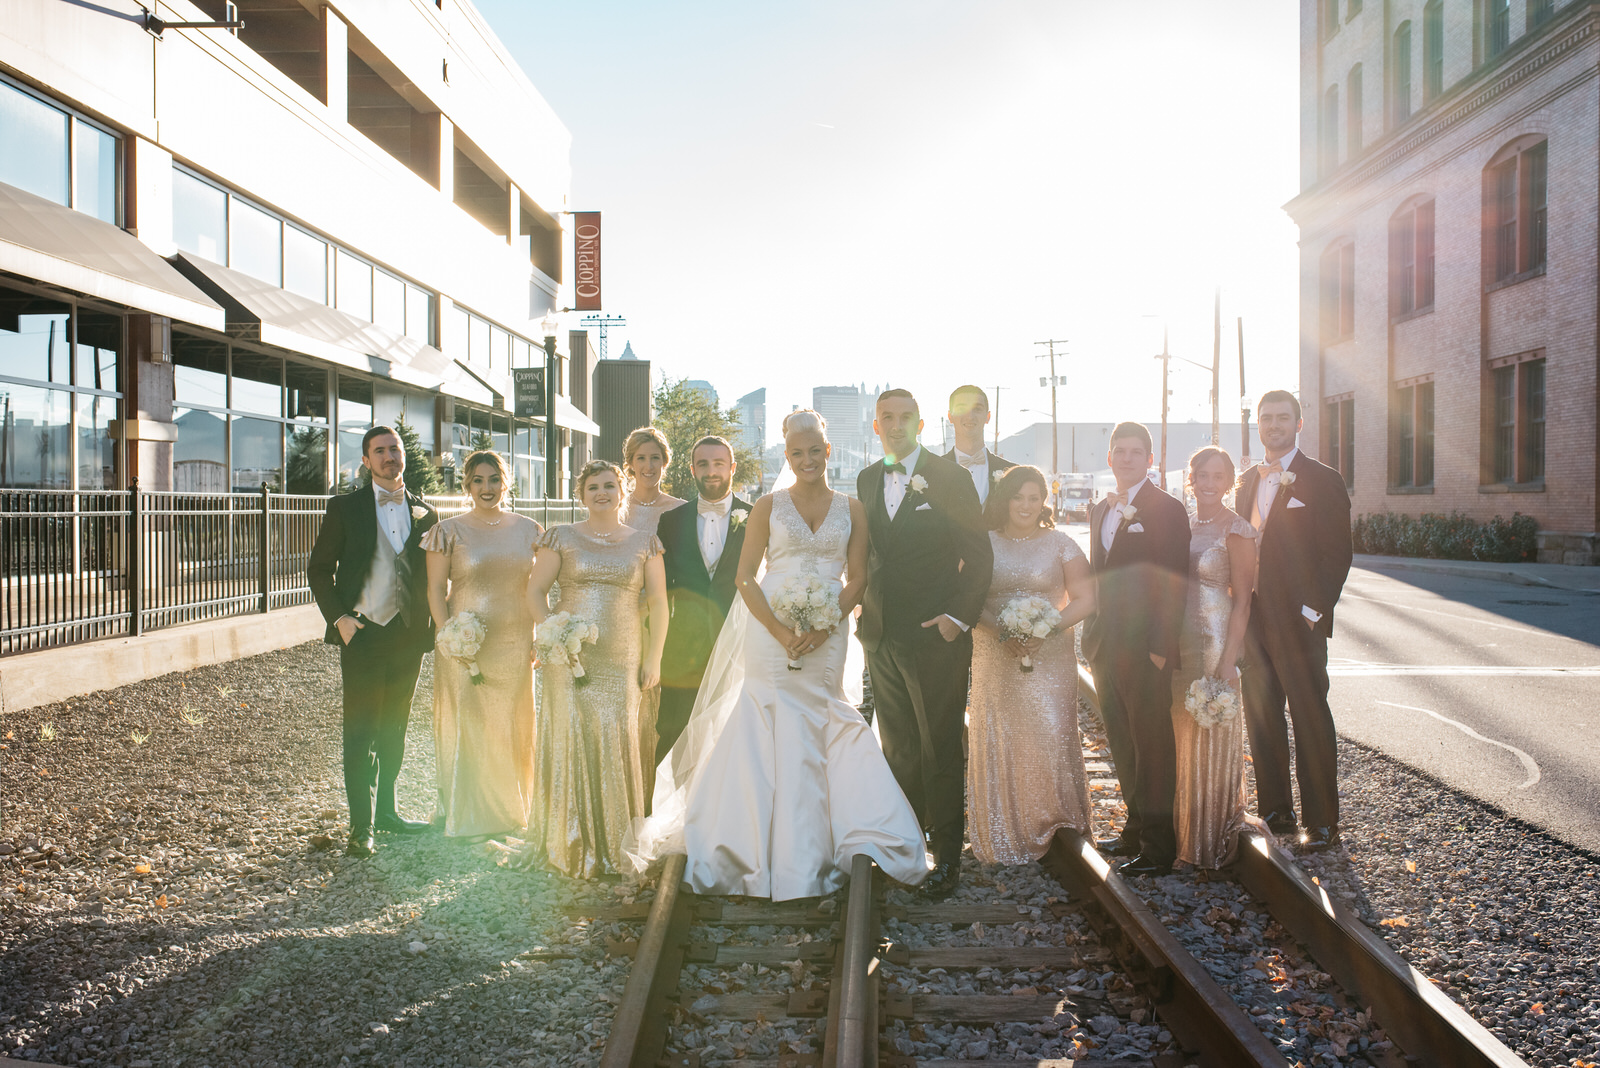 hilton_garden_inn_southpointe_pittsburgh_weddings_70.jpg